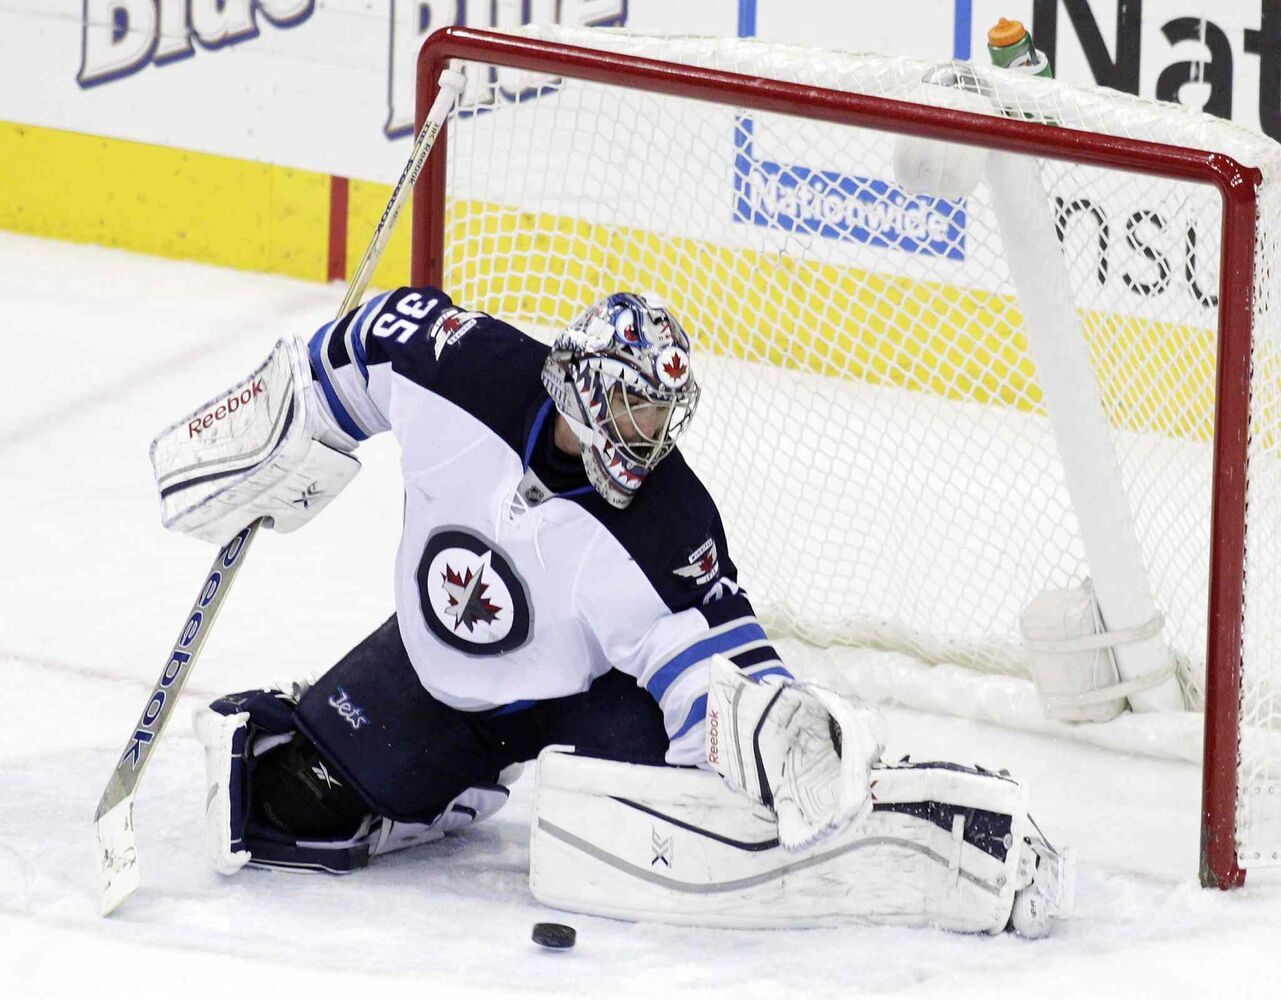 Al Montoya makes a save Monday night. (Jay LaPrete / The Associated Press)